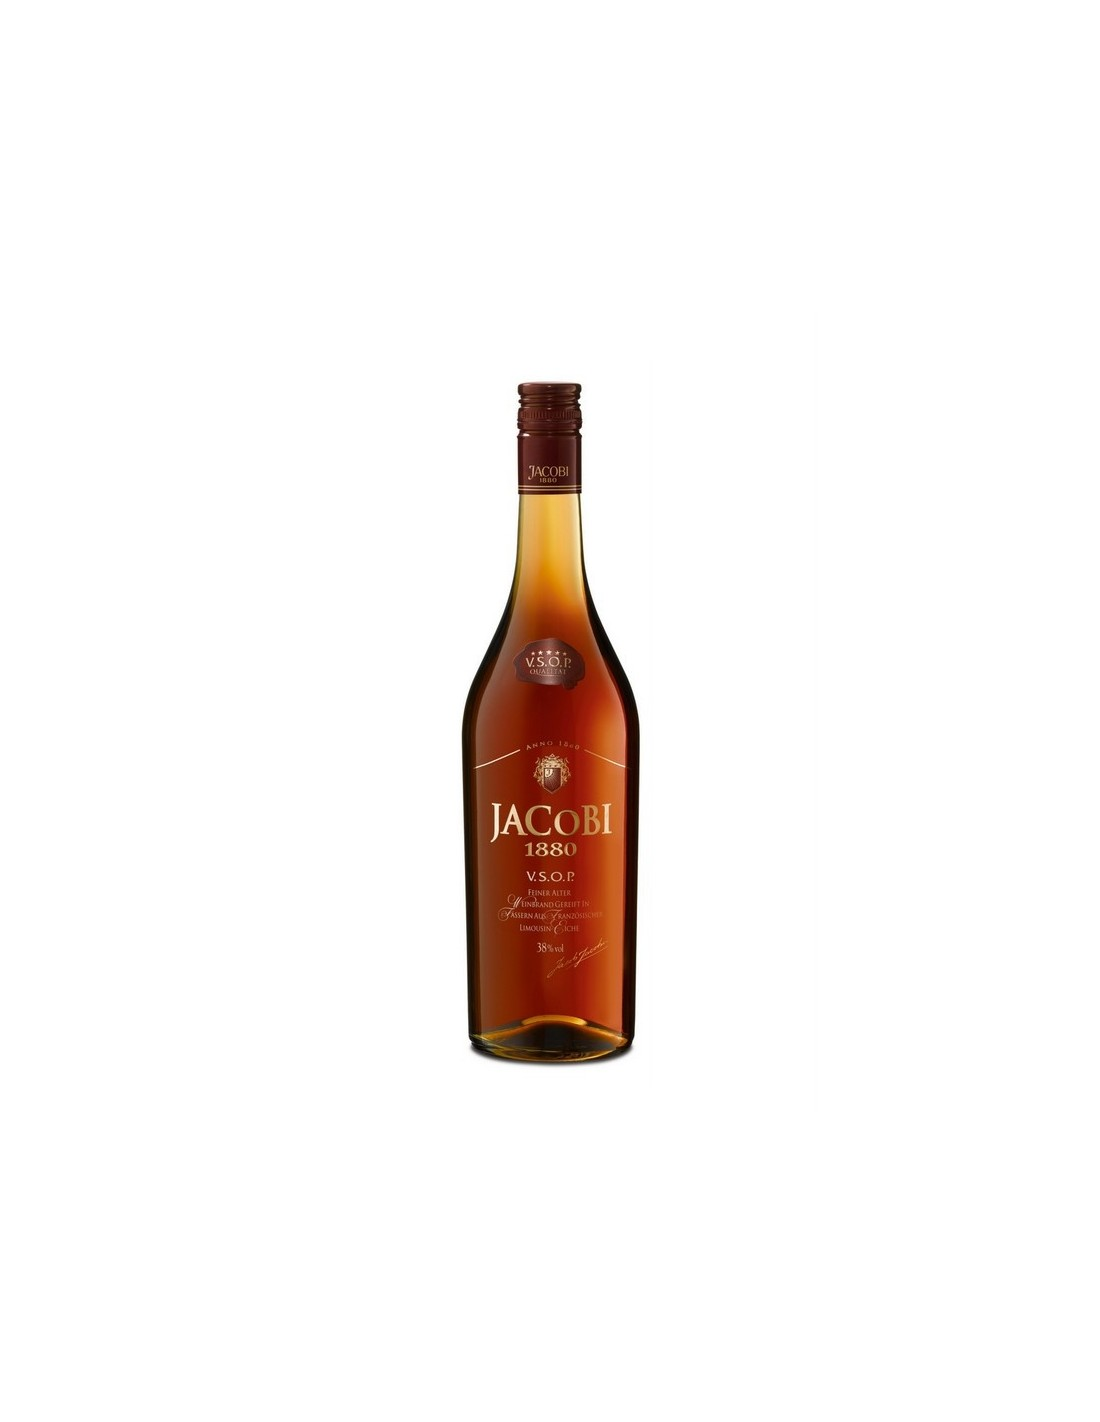 Coniac Brandy Jacobi 1880 VSOP, 38% alc., 0.7L, Germania